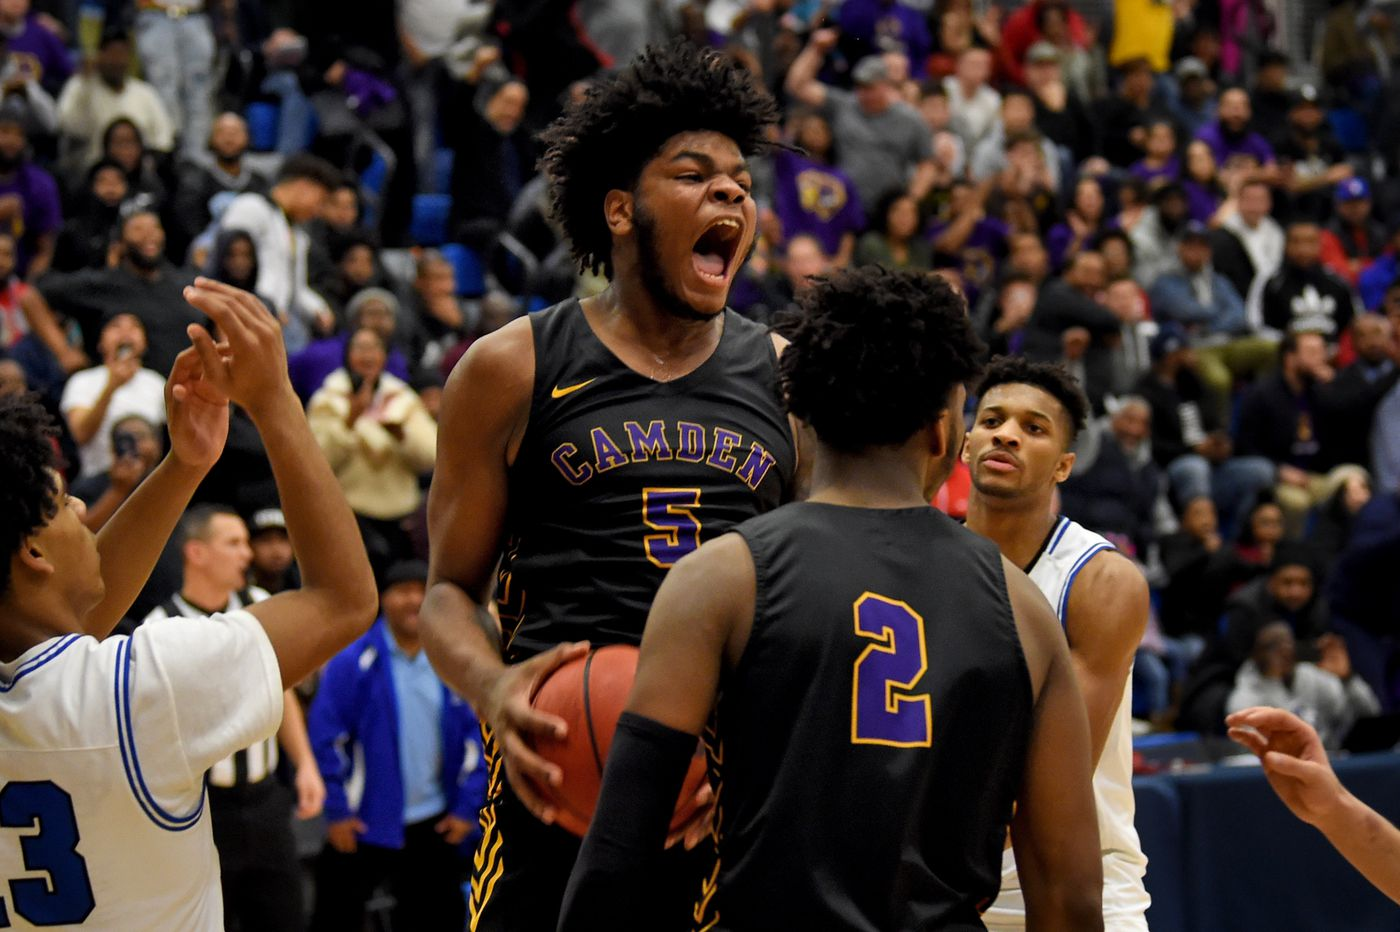 Camden basketball star TaQuan Woodley commits to Penn State